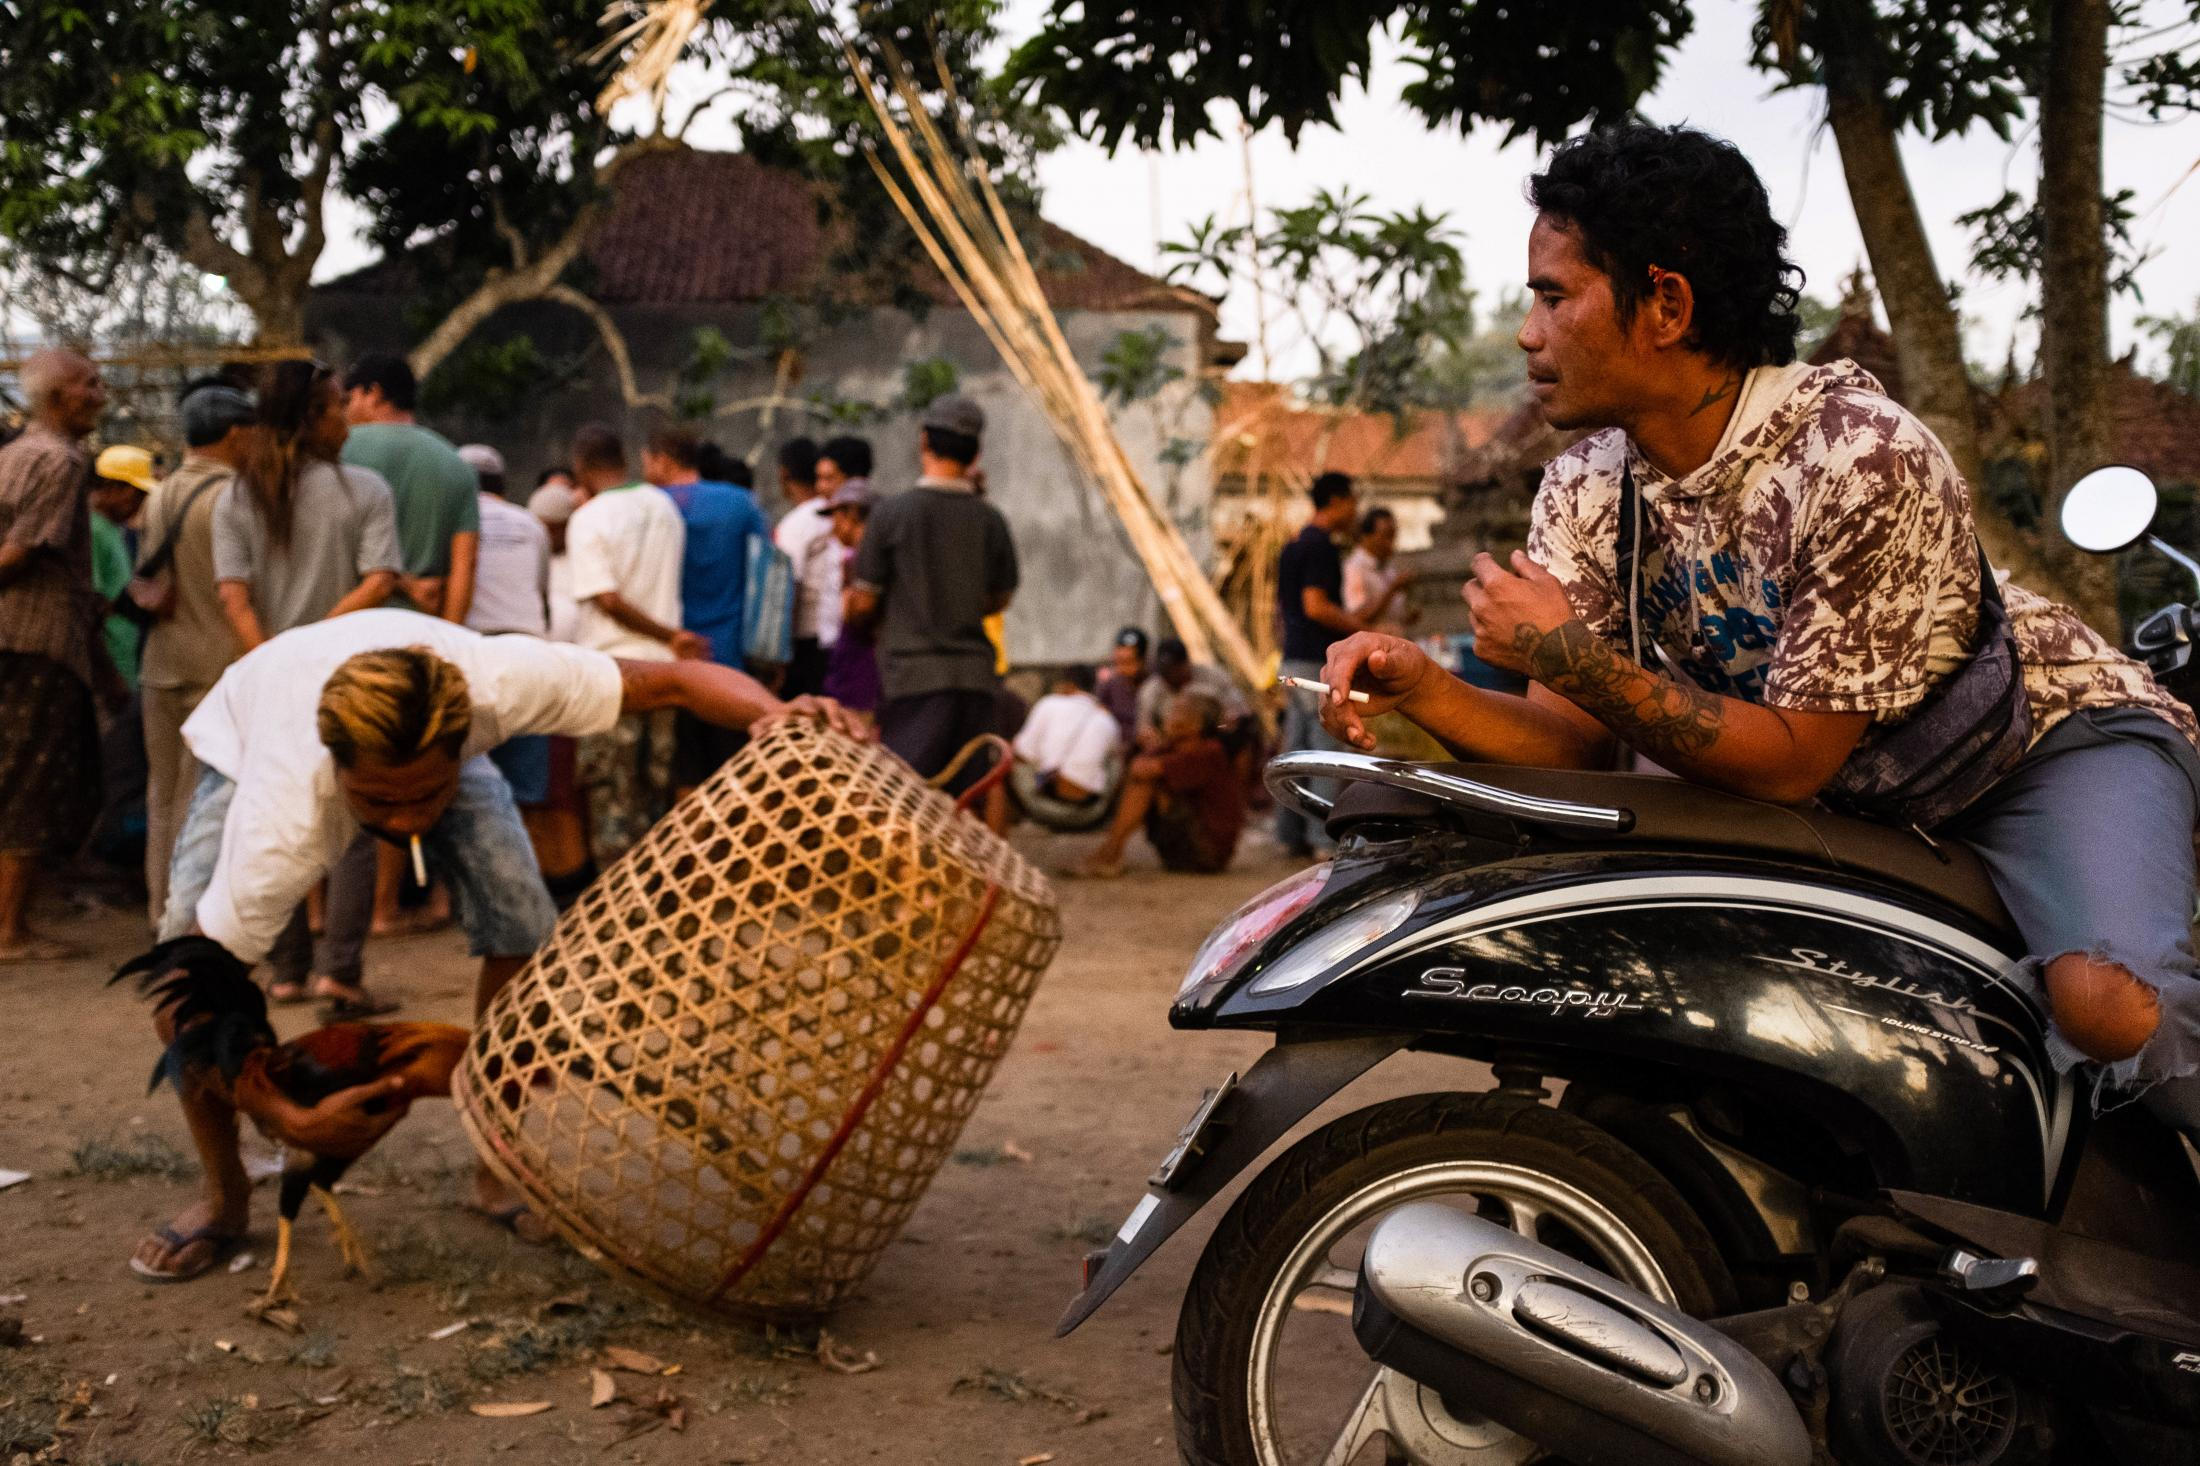 Layed down on the motorcycle seat, smoking a cigarette, a man observes a player taking a rooster from the wicker cage. All over the island at the side of the roads, cages can be seen with roosters inside. The breeders claim that it's for the animals to get used to movement and people.